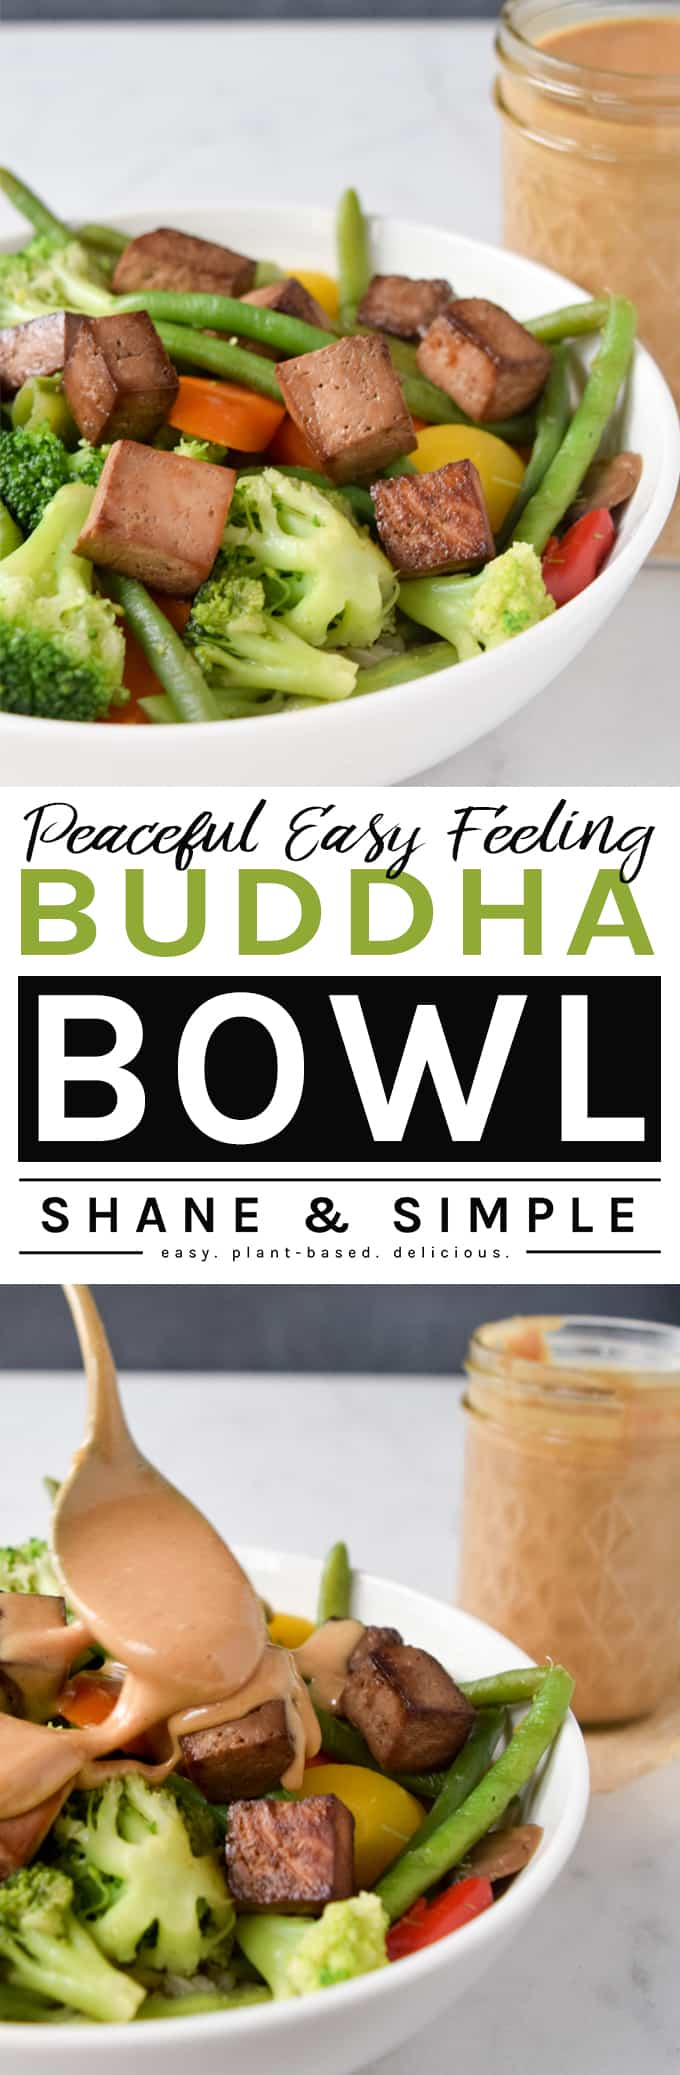 Peaceful Easy Feeling Buddha Bowl